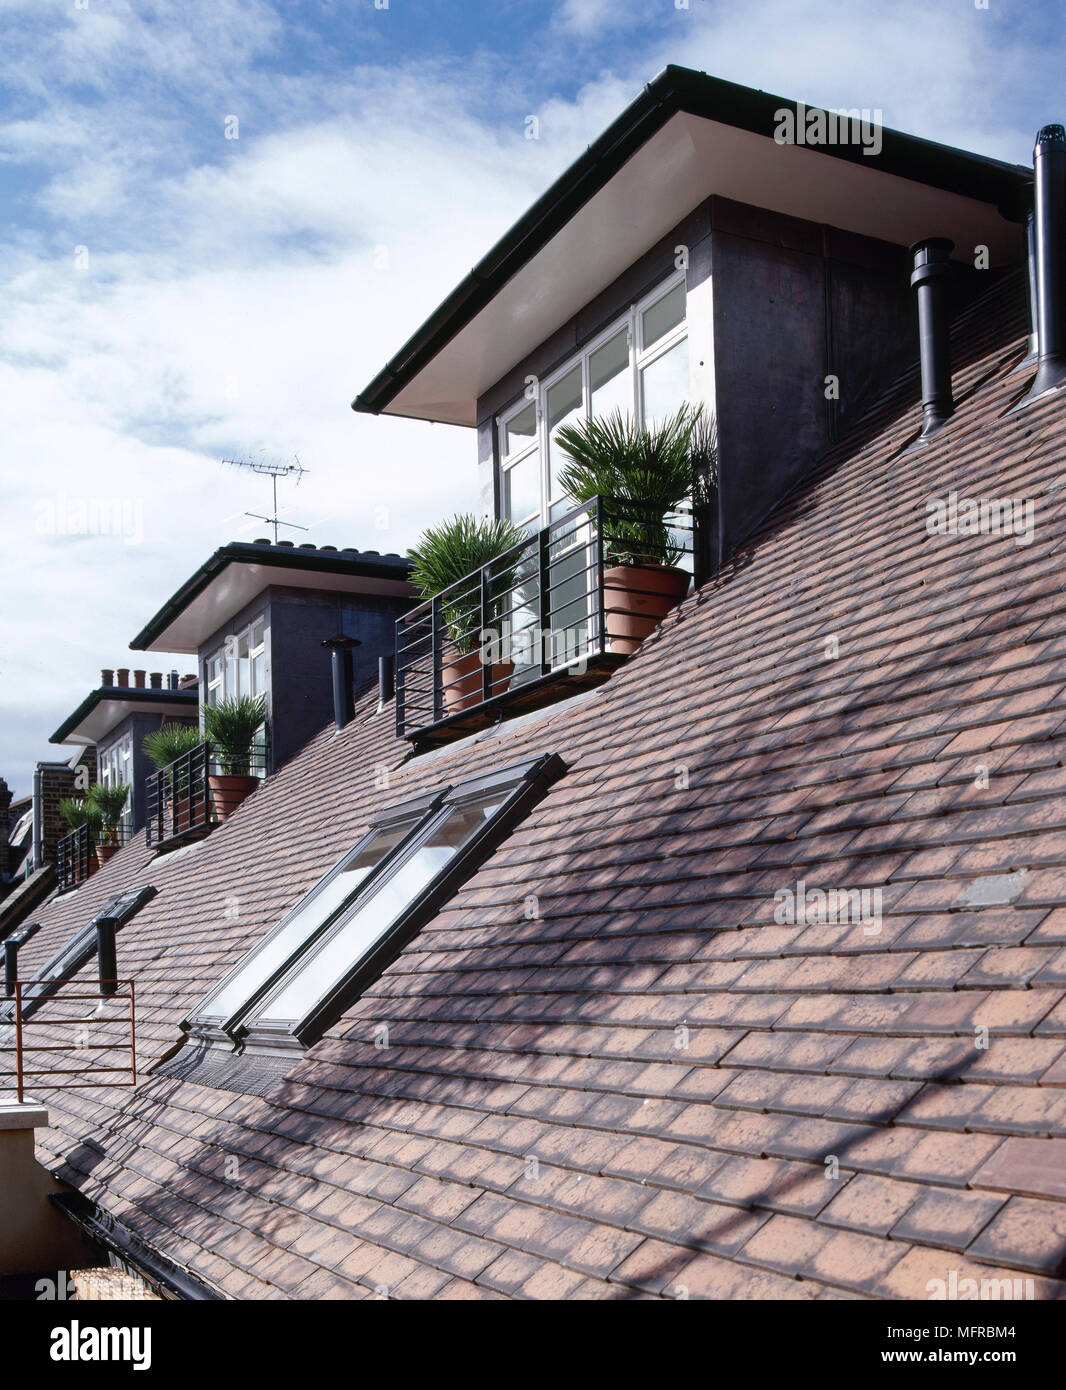 Detail Of Tiled Roof Of Modern House With Dormer Windows